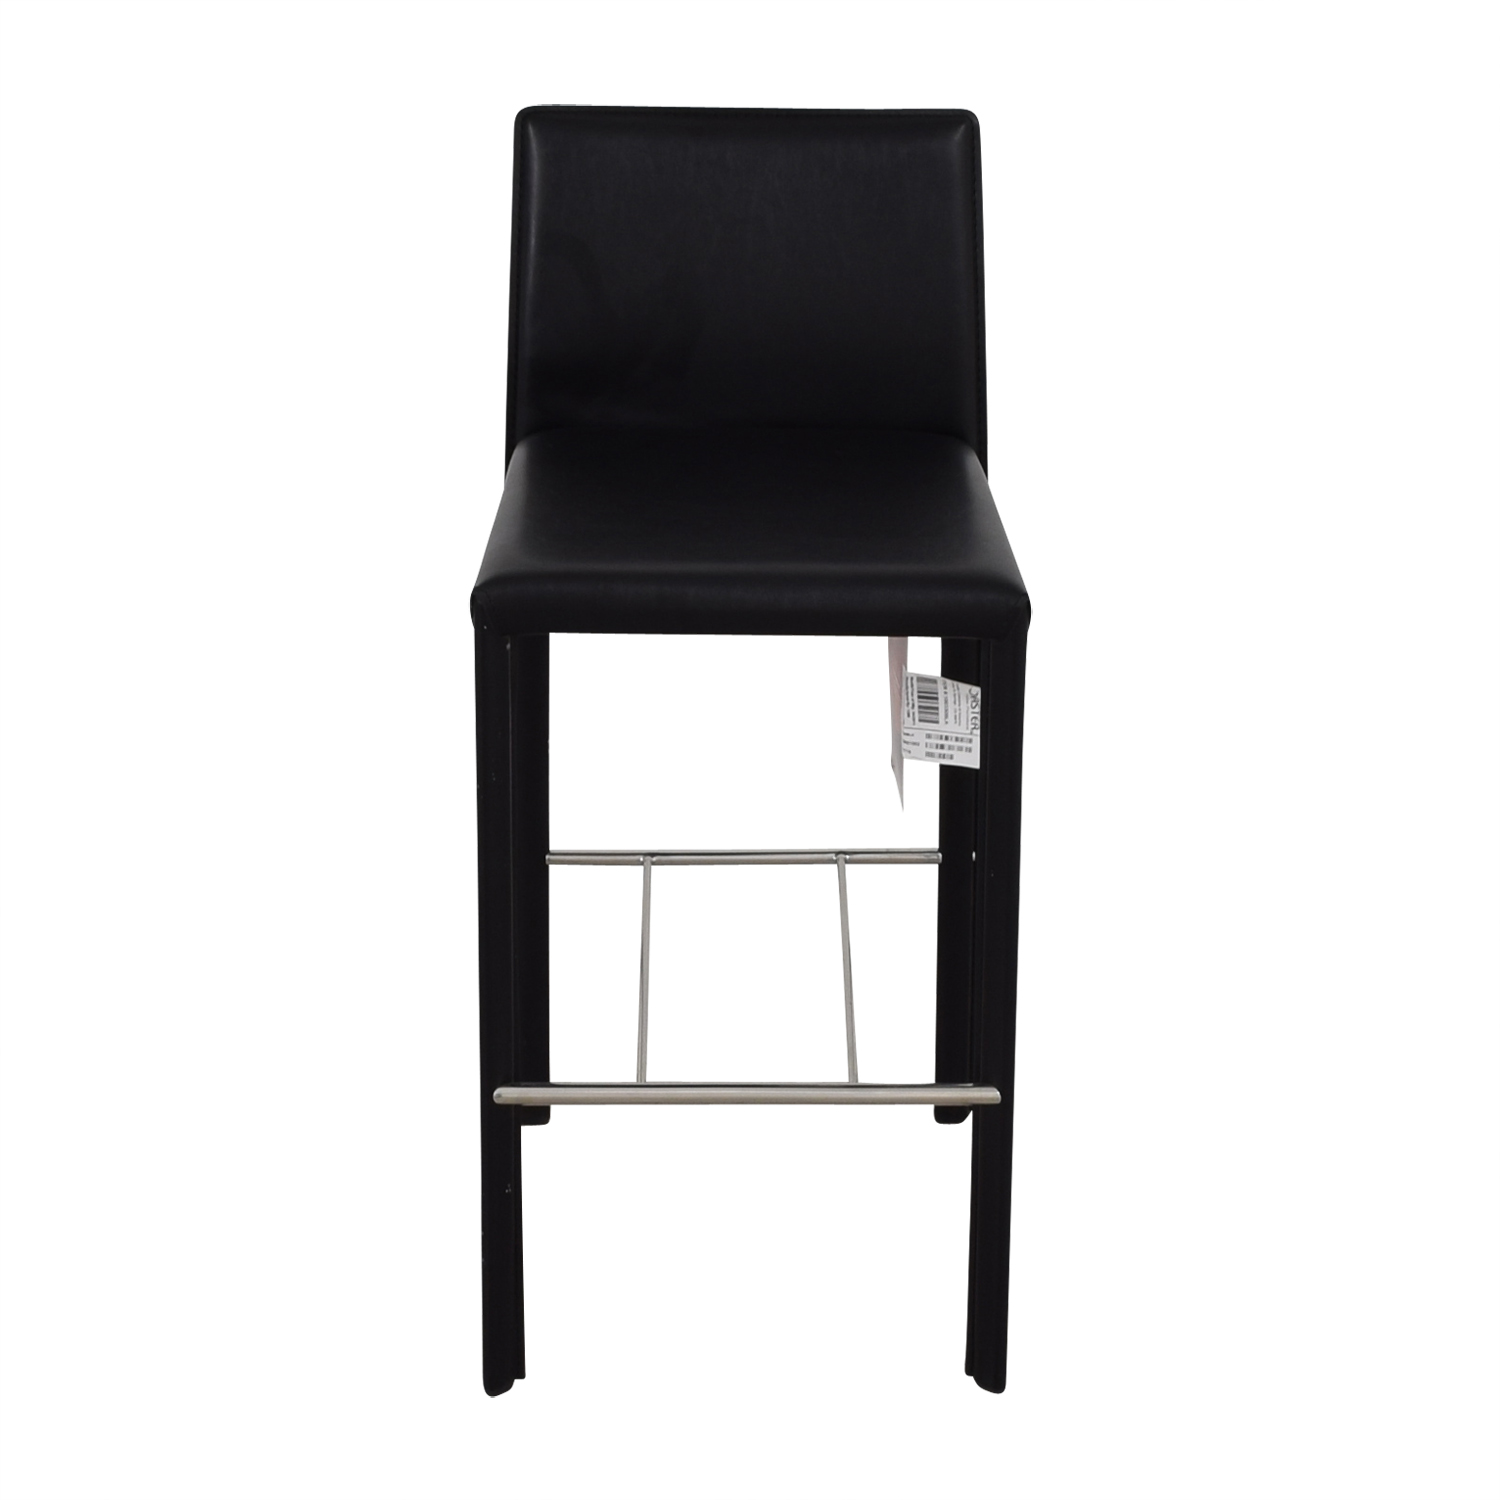 shop Coaster Coaster Modern Black Leatherette Bar Chair online